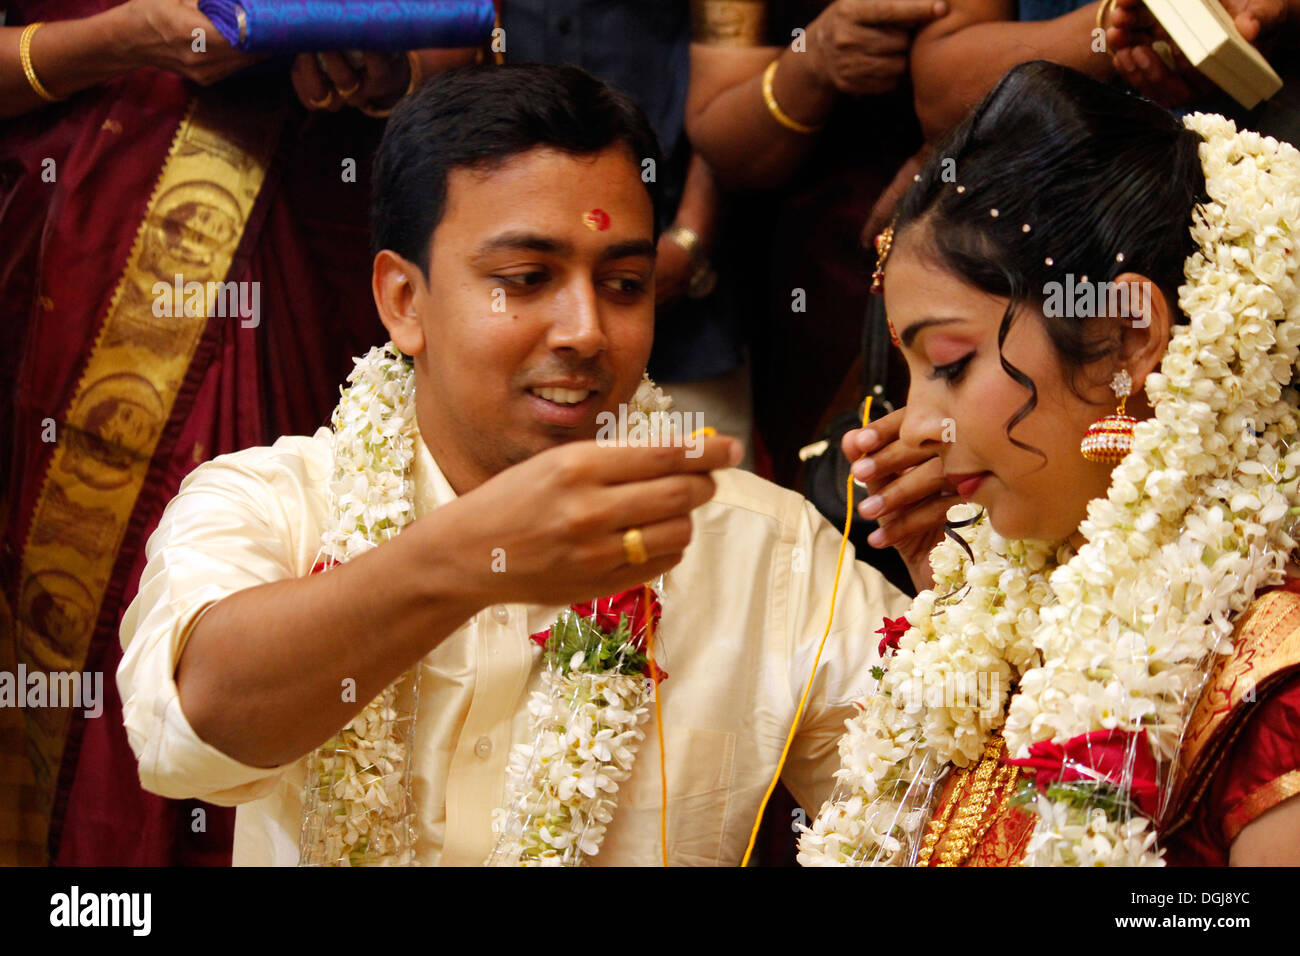 A Hindu Wedding Ceremony In IndiaTying The Knot